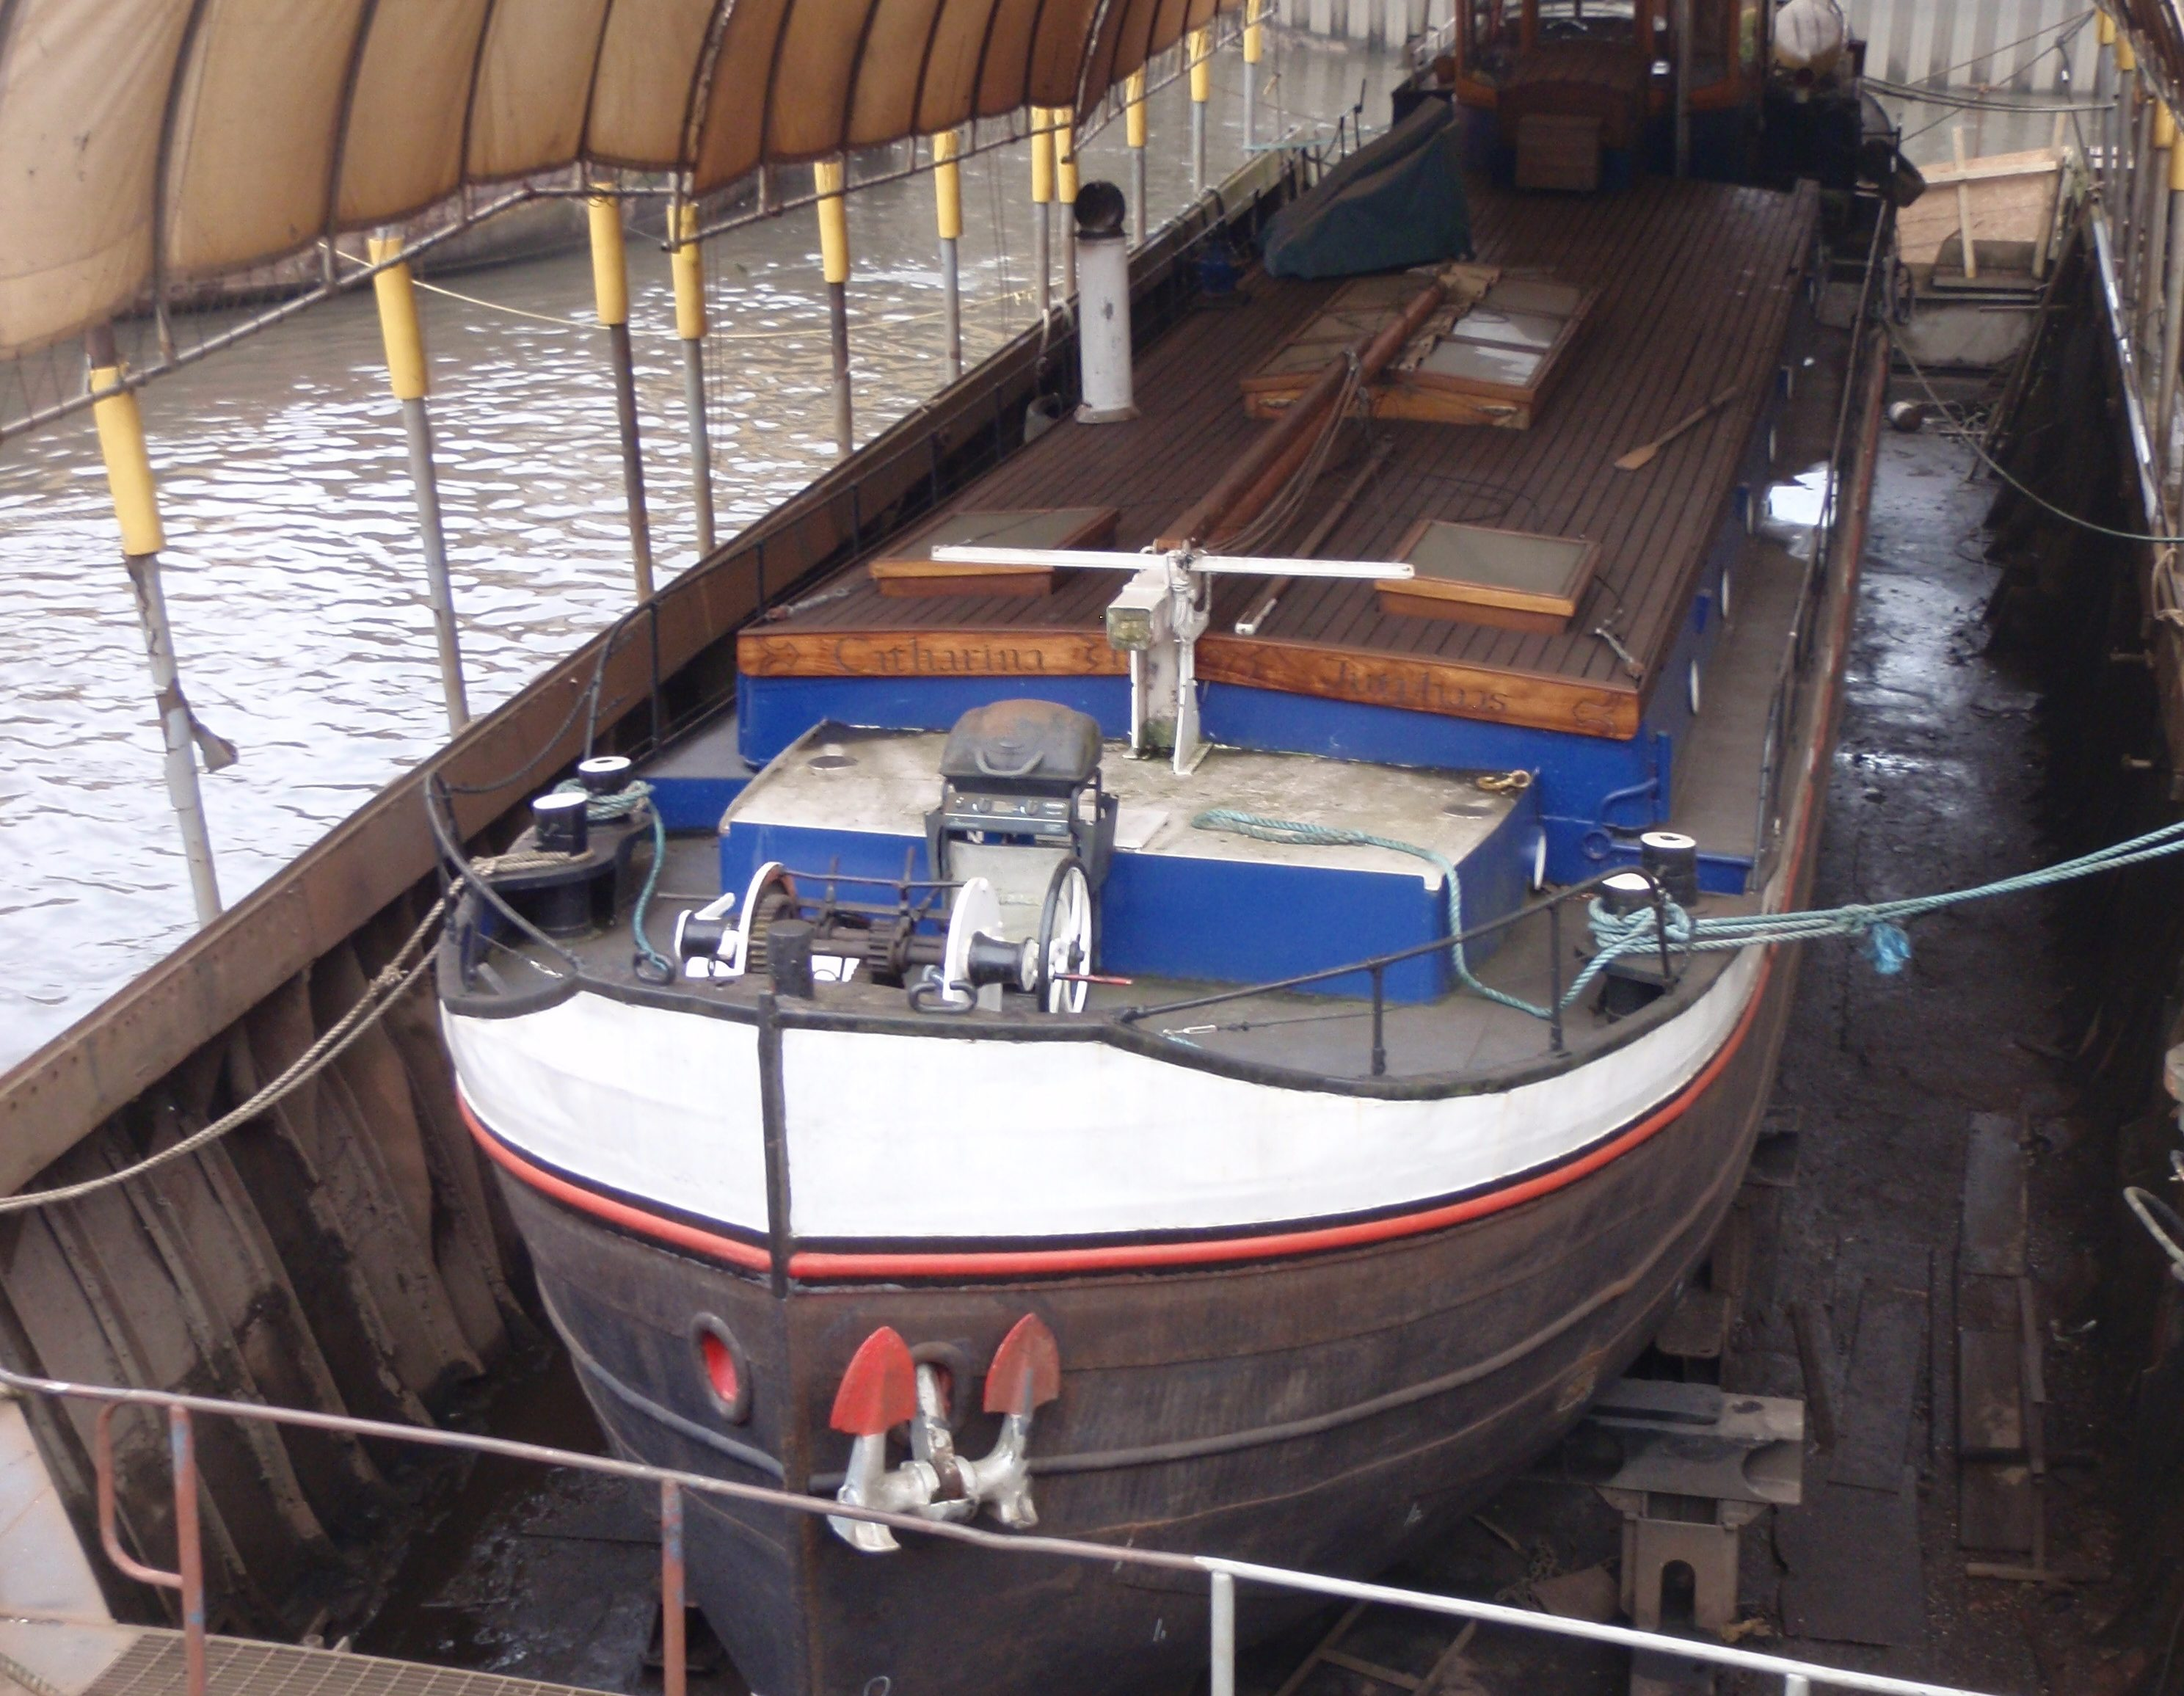 Insurance Survey by White Hat Marine Surveying of a 28 Metre Dutch Barge in Dry Dock at MSO Marine, London